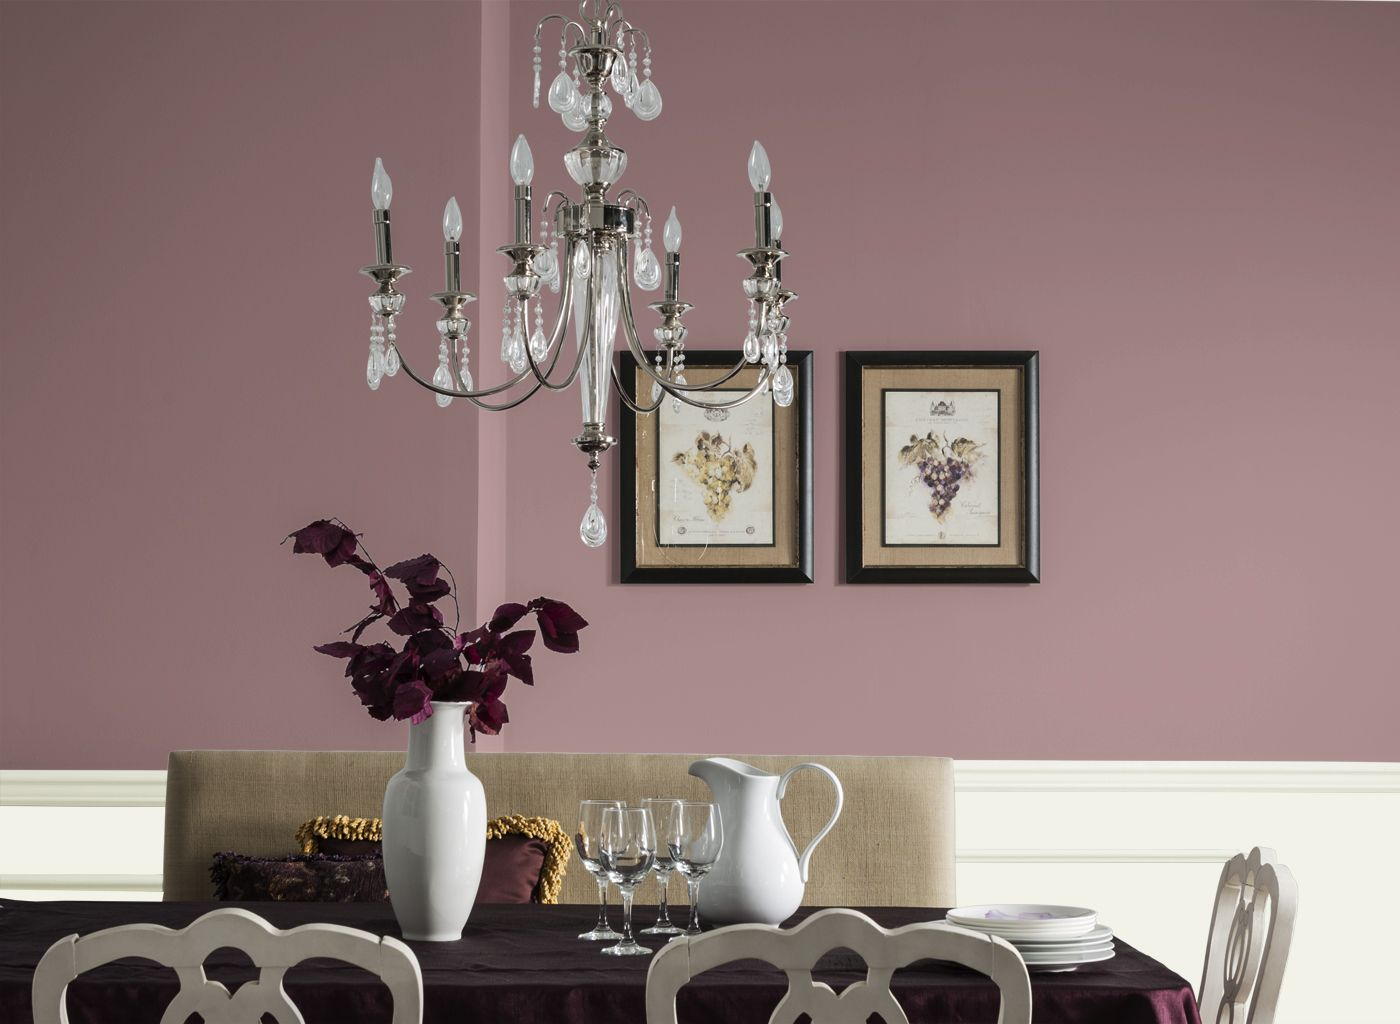 Burgundy And Mauve Rooms Google Search Wall Colors Dining Room Chandelier Modern Wall Dining Table